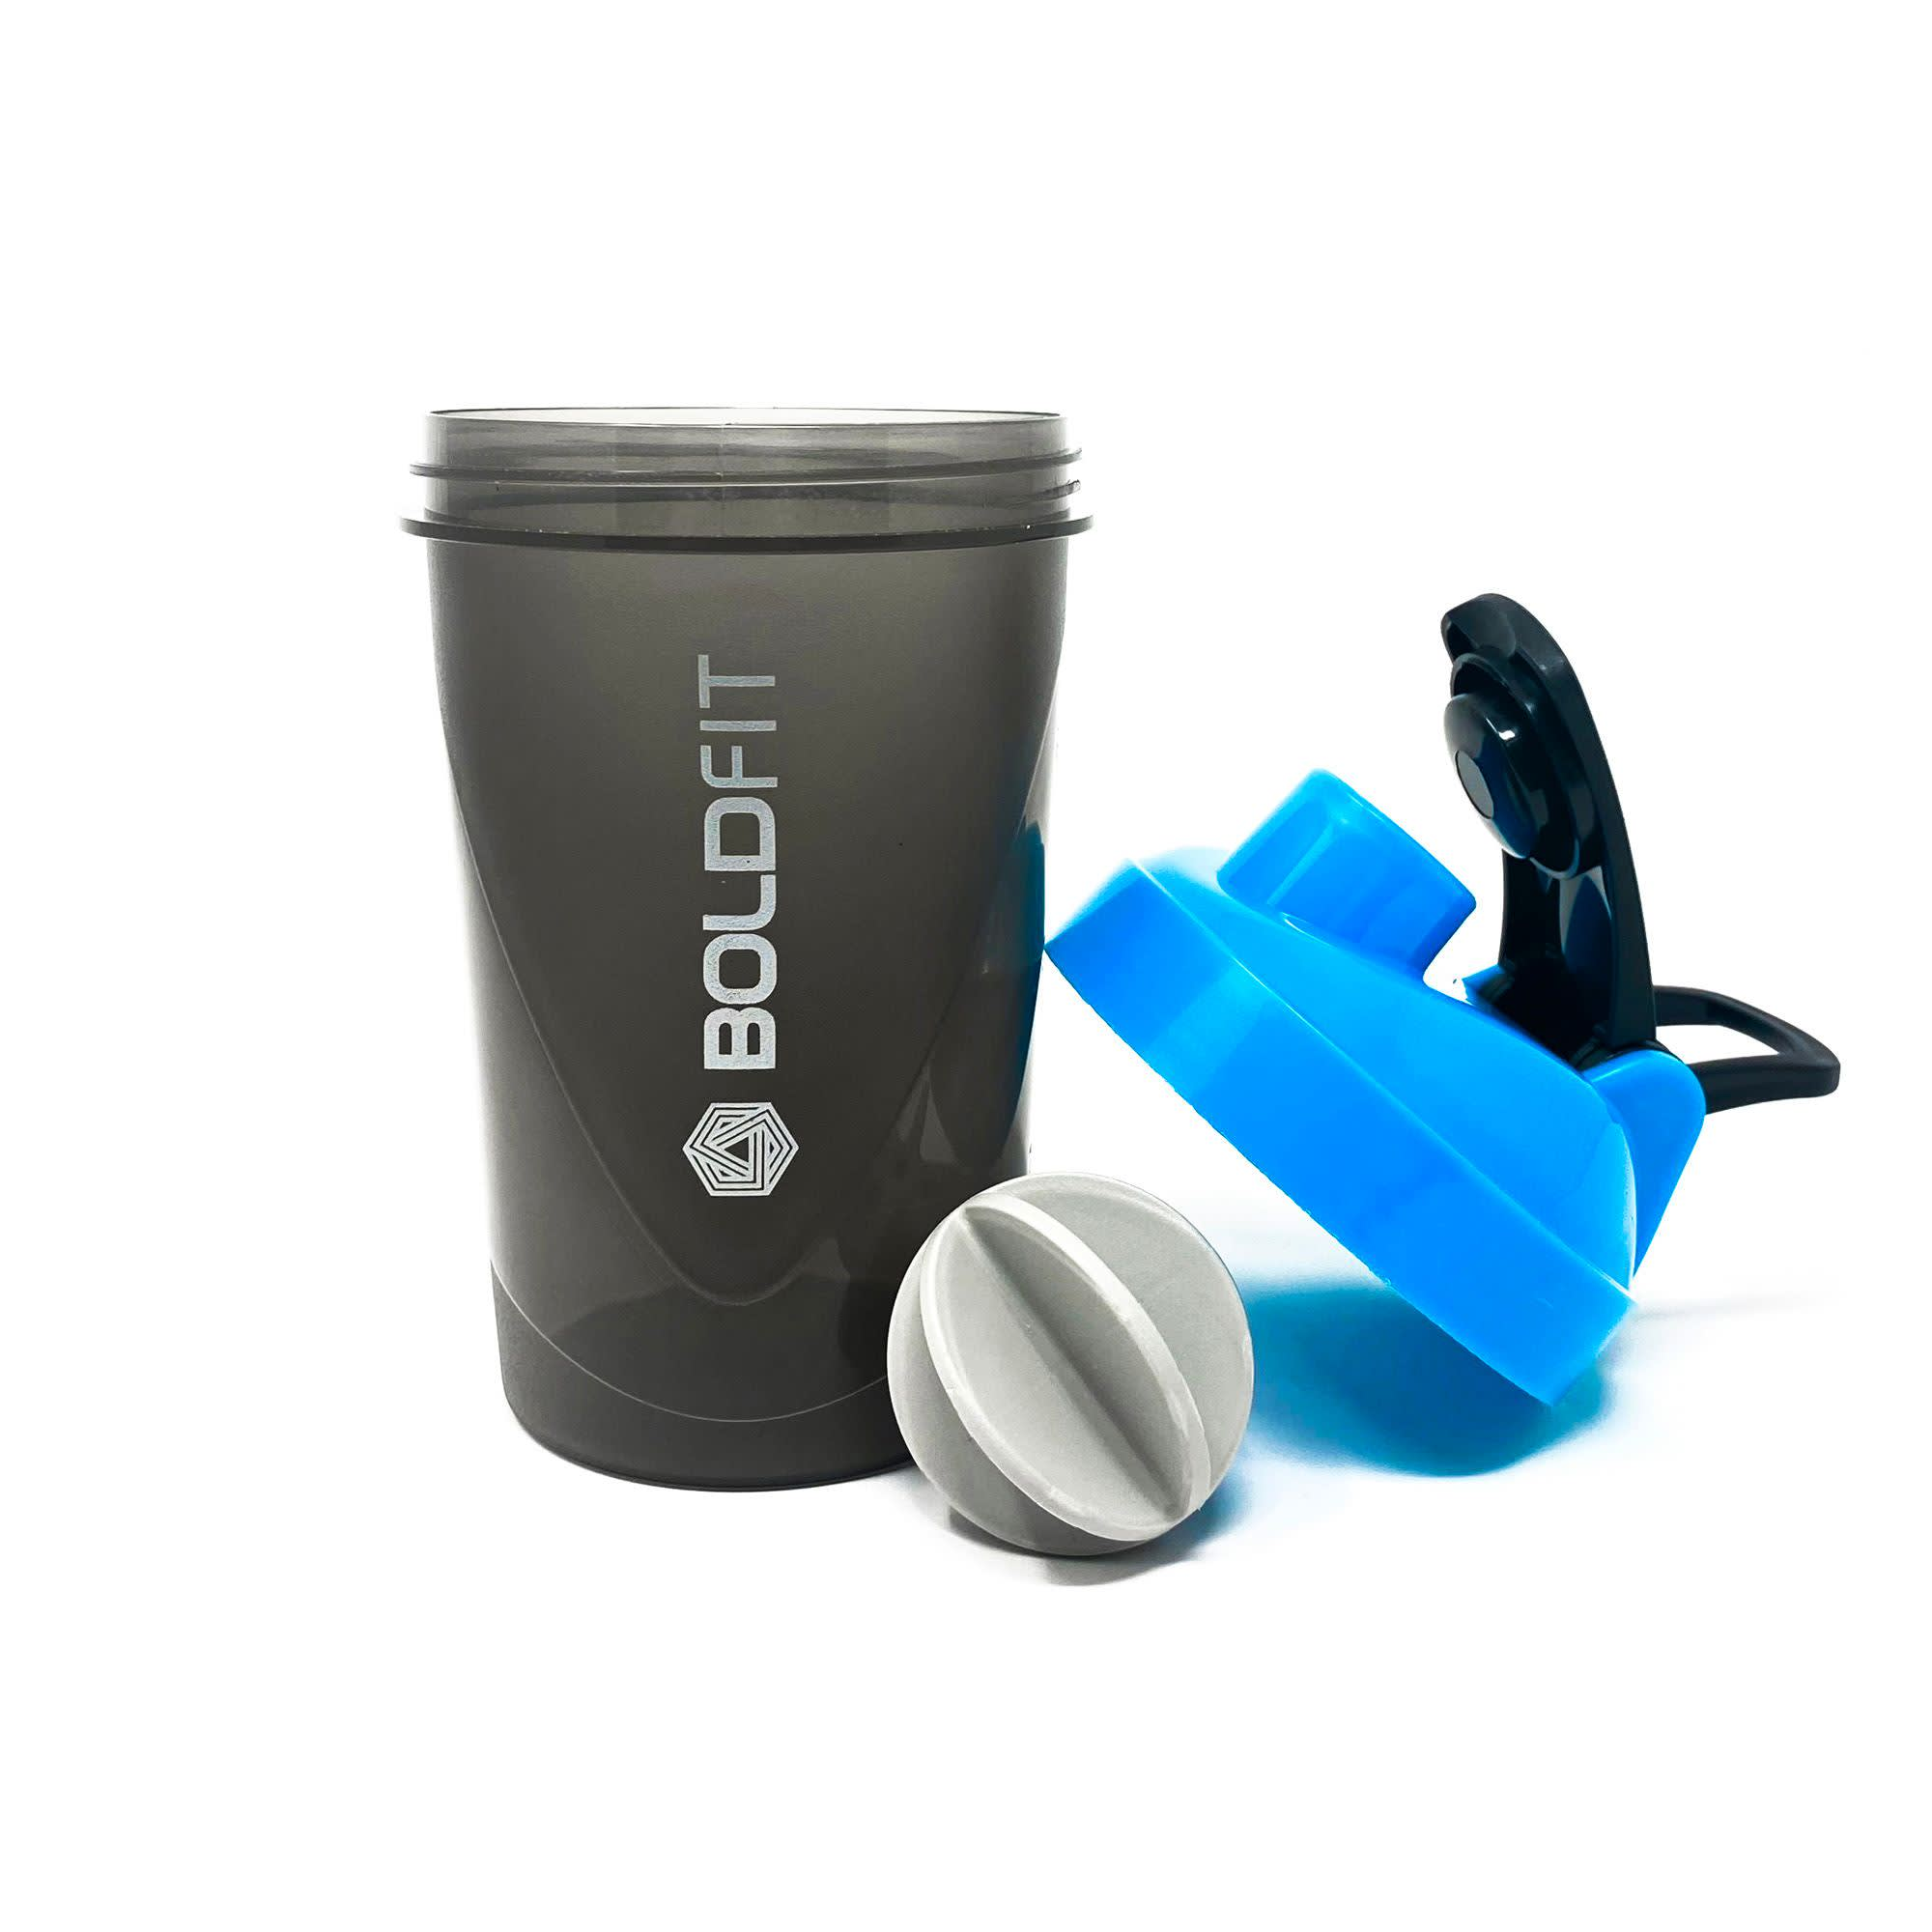 Boldfit Compact Gym Shaker Bottle 500ml, Shaker Bottles For Protein Shake 100% Leakproof Guarantee Protein Shaker/sipper Bottle, Ideal For Protein, Pre Workout And Bcaas & Water Bpa Free Material